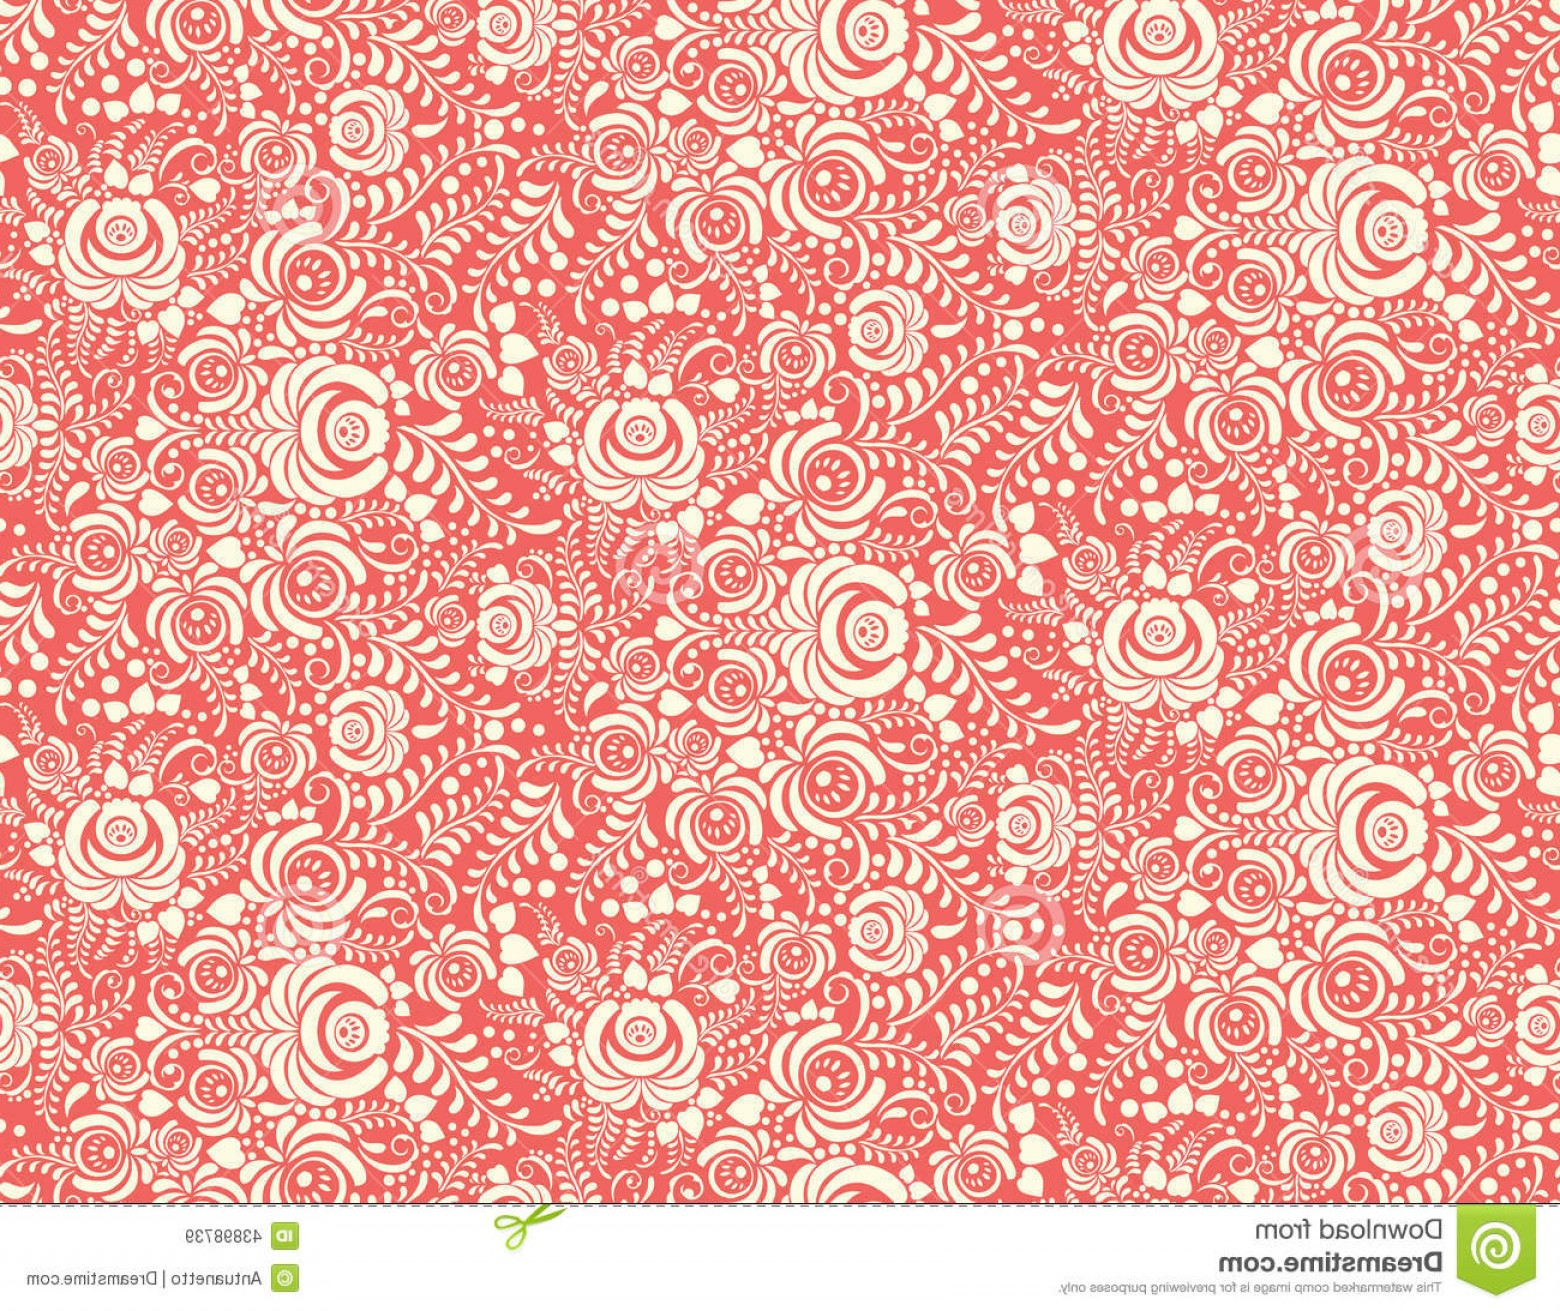 Russian Patterns Vector: Stock Illustration Red Floral Textile Vector Seamless Pattern Russian Gzhel Style Image